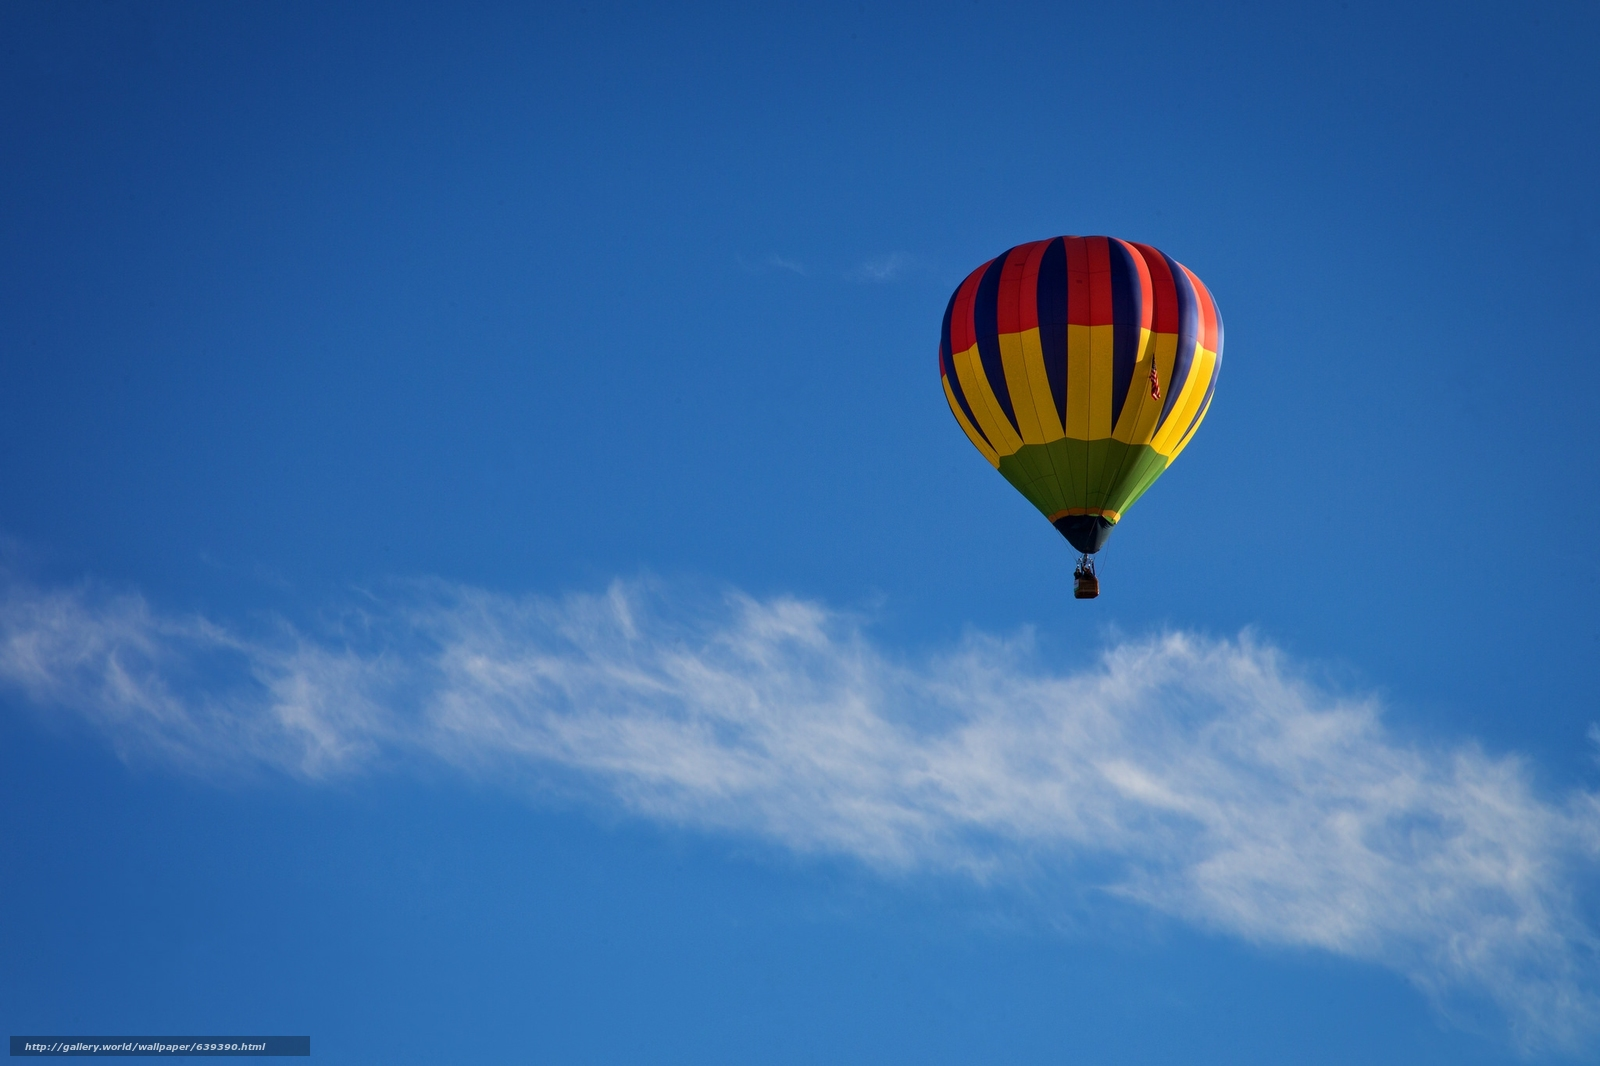 hot air balloon, Aerostat, balloon, sky